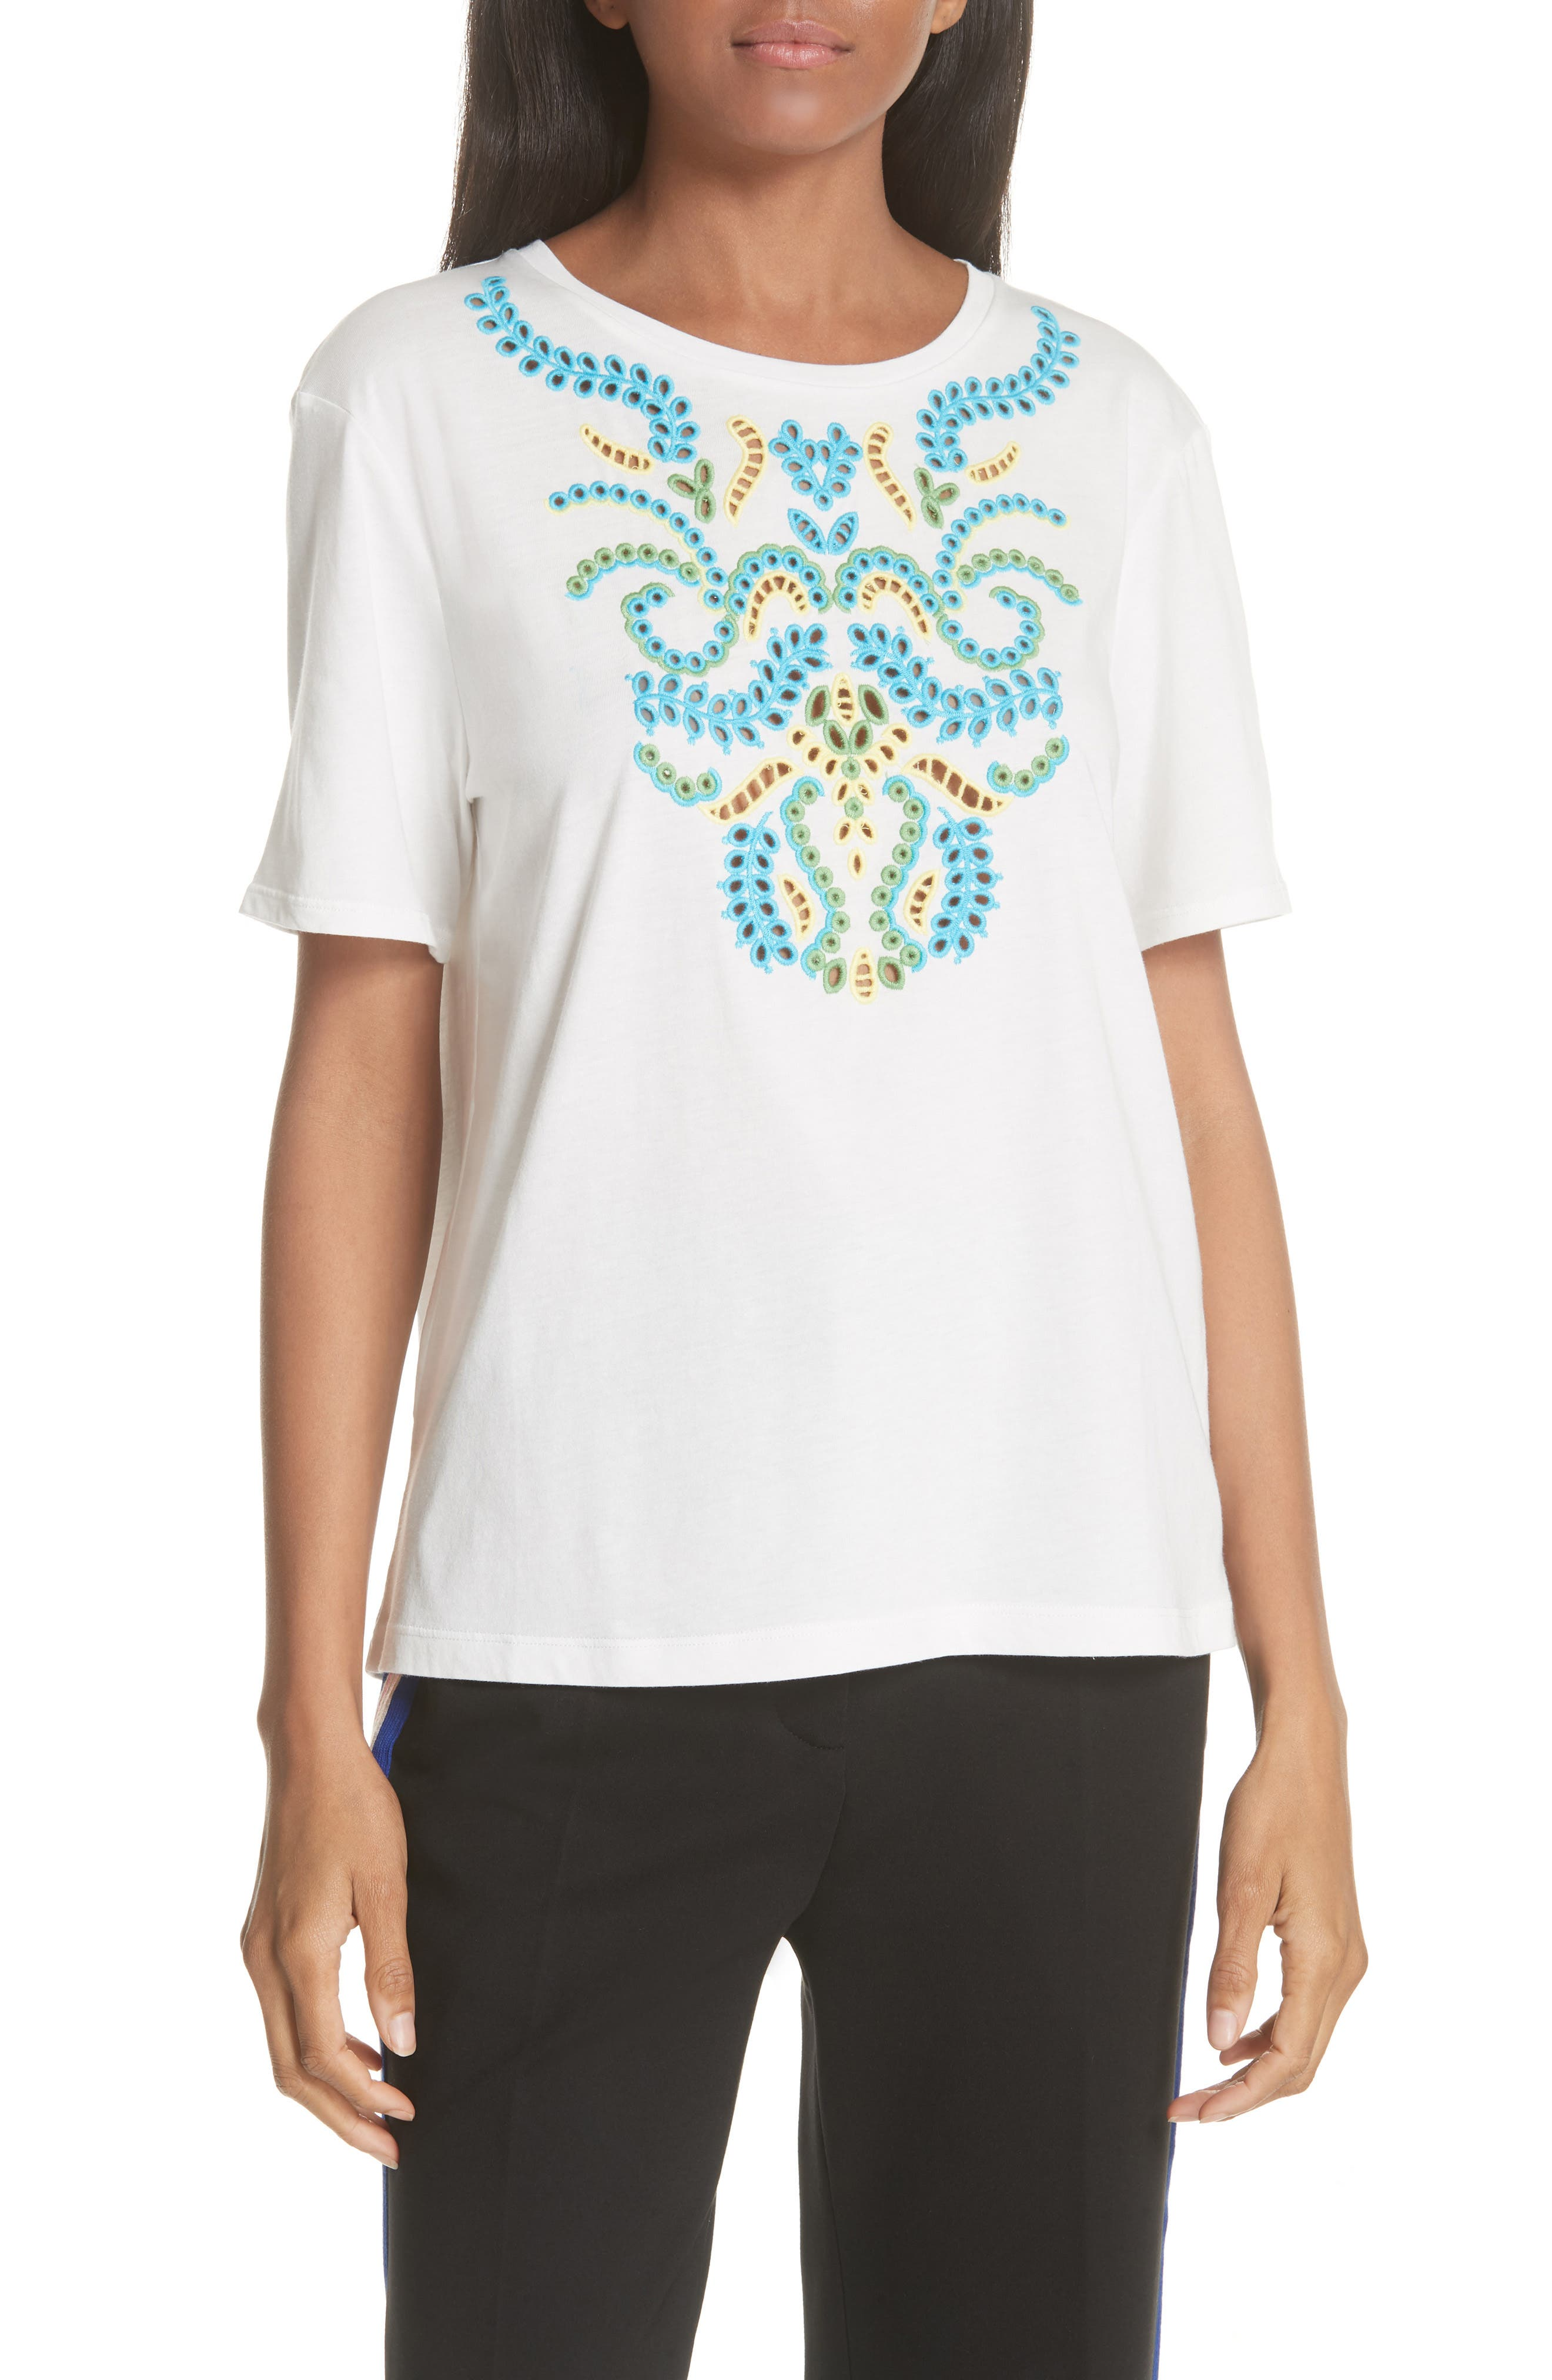 SANDRO Embroidery Cotton Blend Tee, Main, color, 100